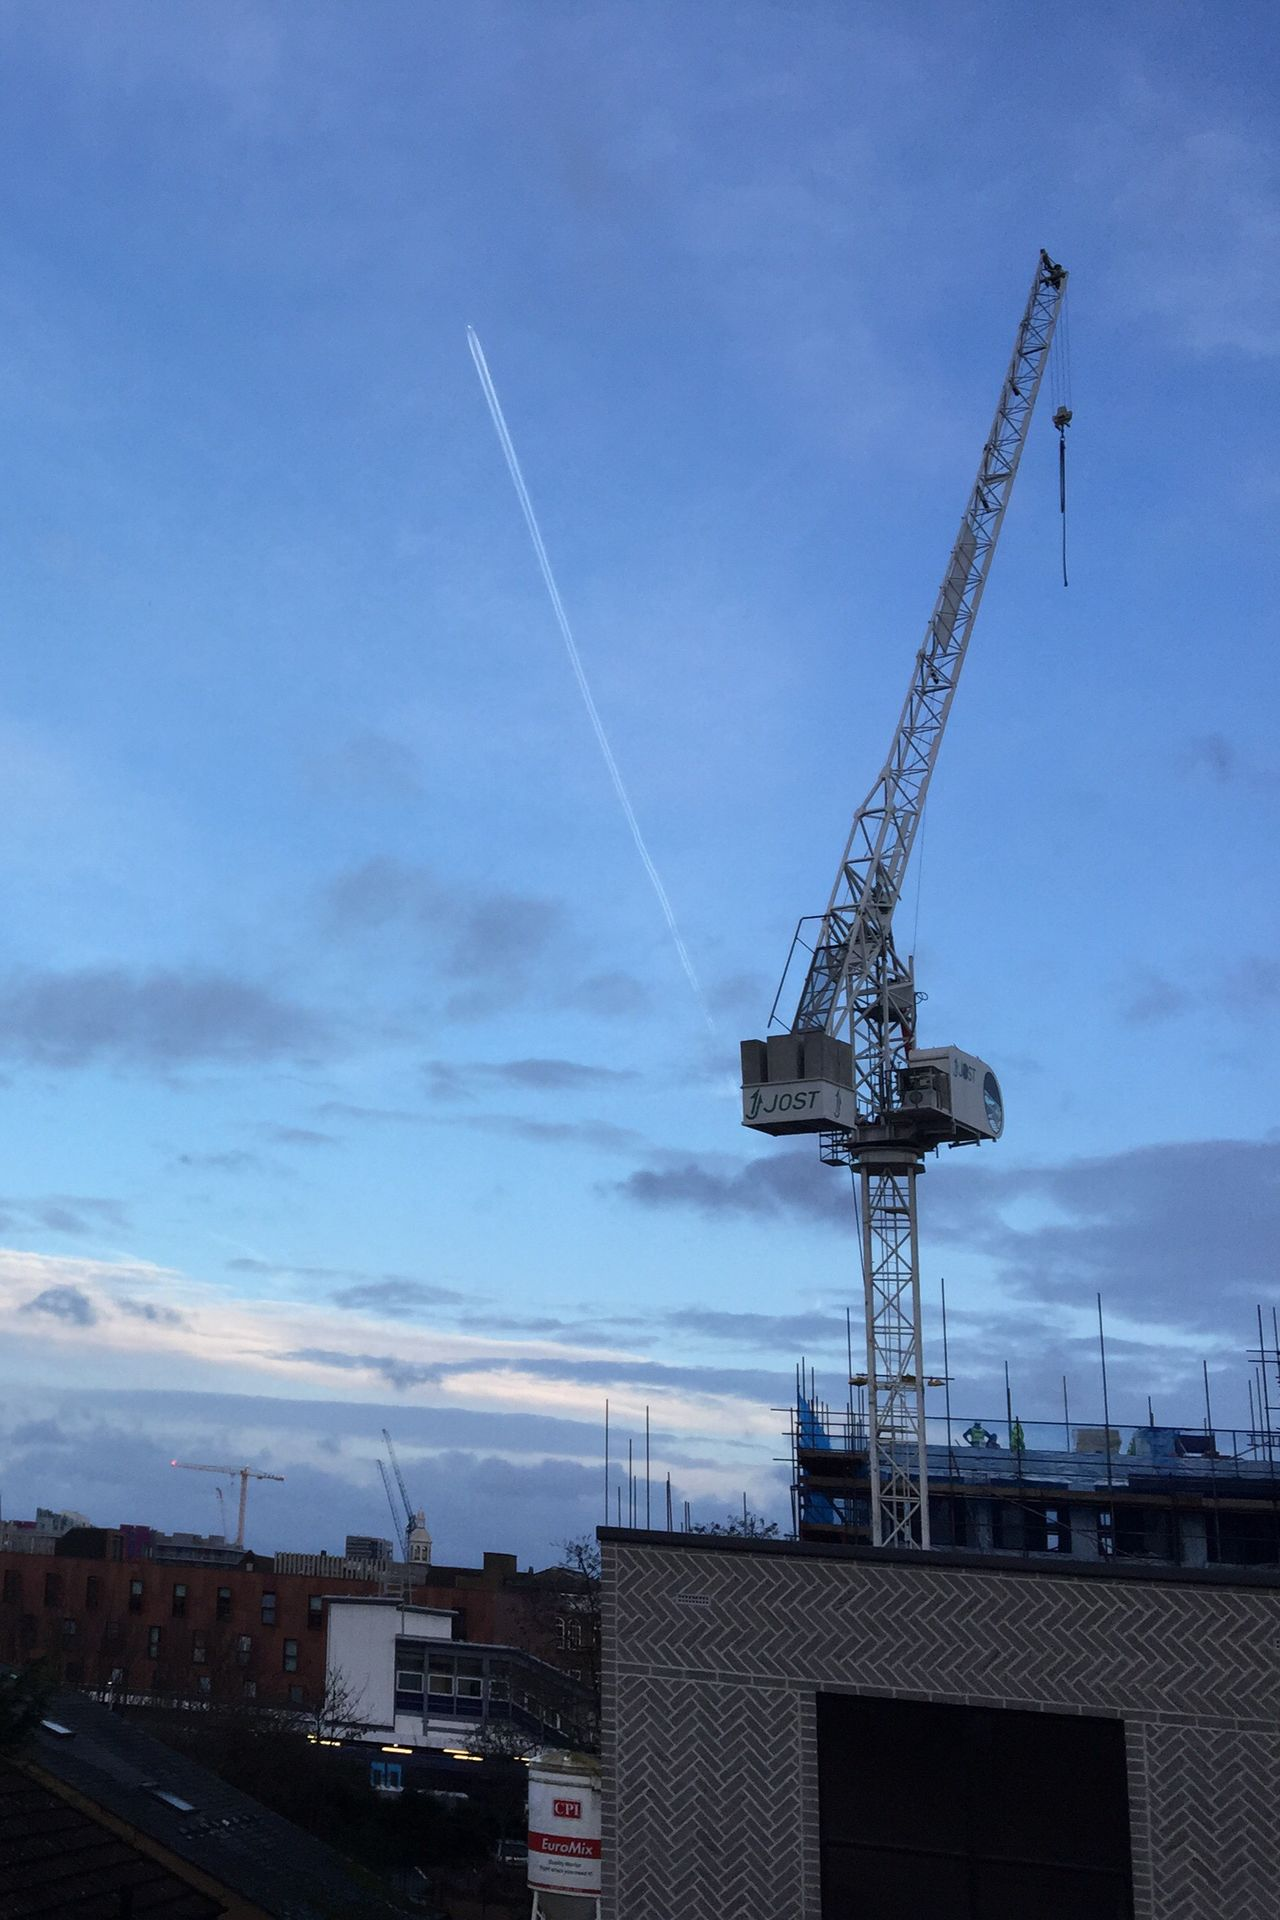 Crane Construction Site Contructionwork New Build V For Victory Formations Message In The Sky